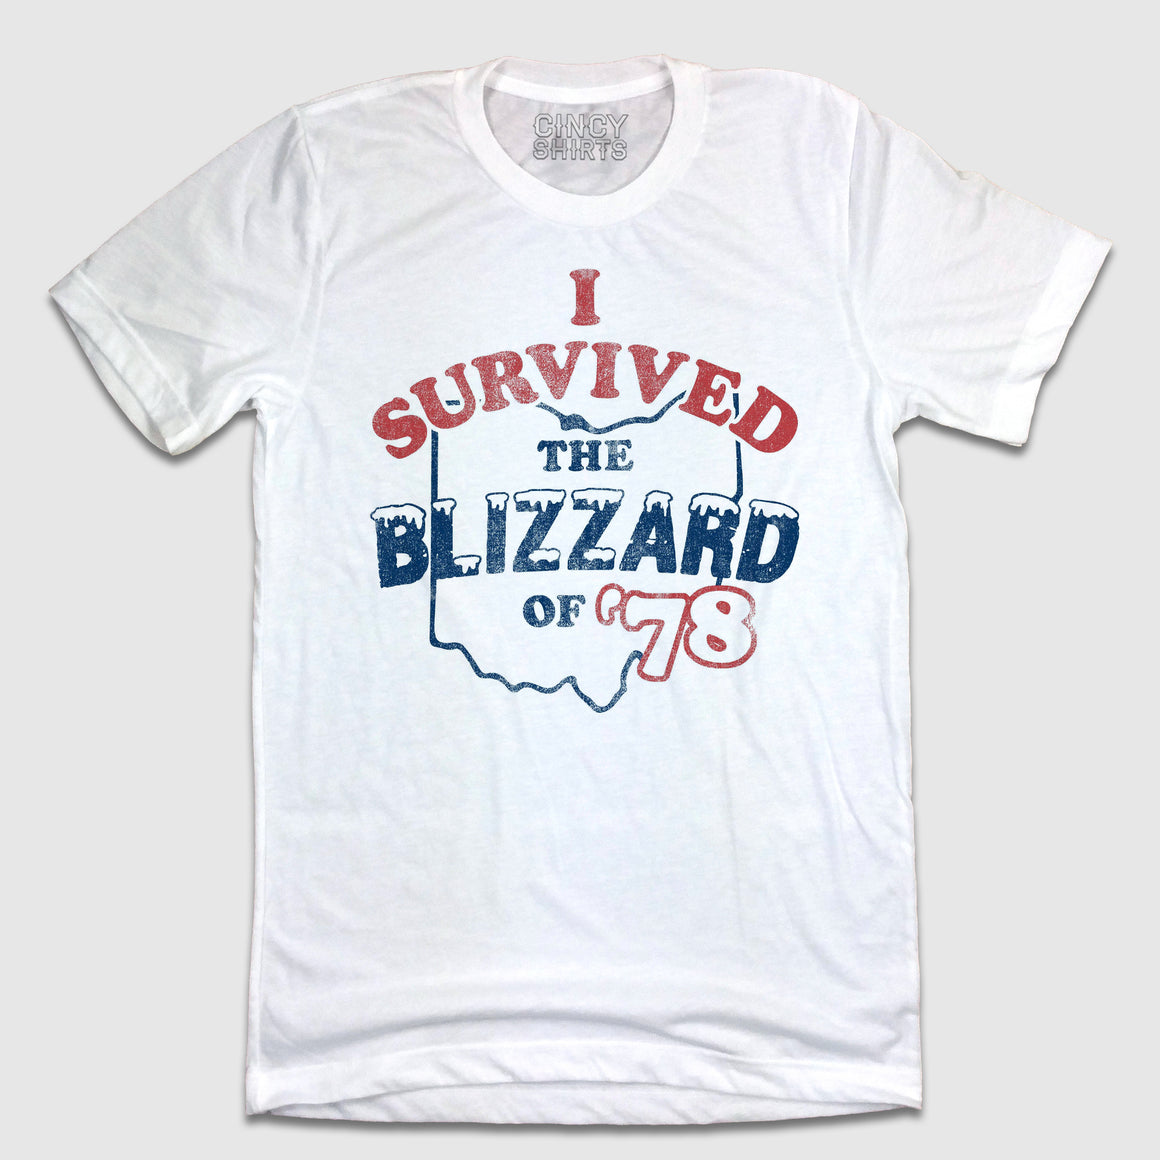 Blizzard of 78' - Cincy Shirts